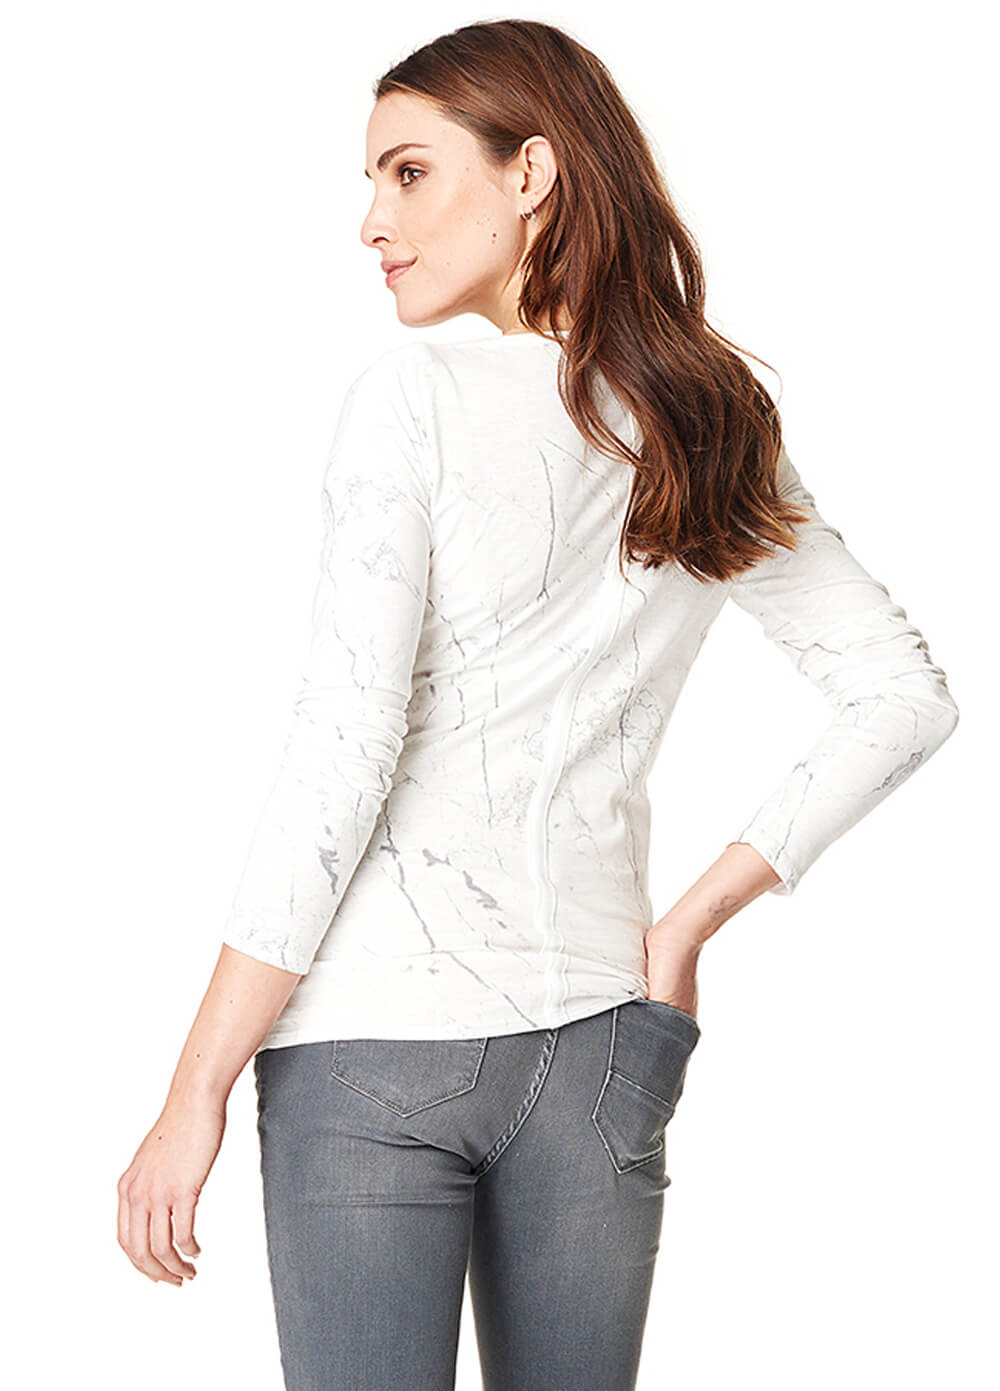 Hedy Long Sleeve Marble Maternity Top by Noppies